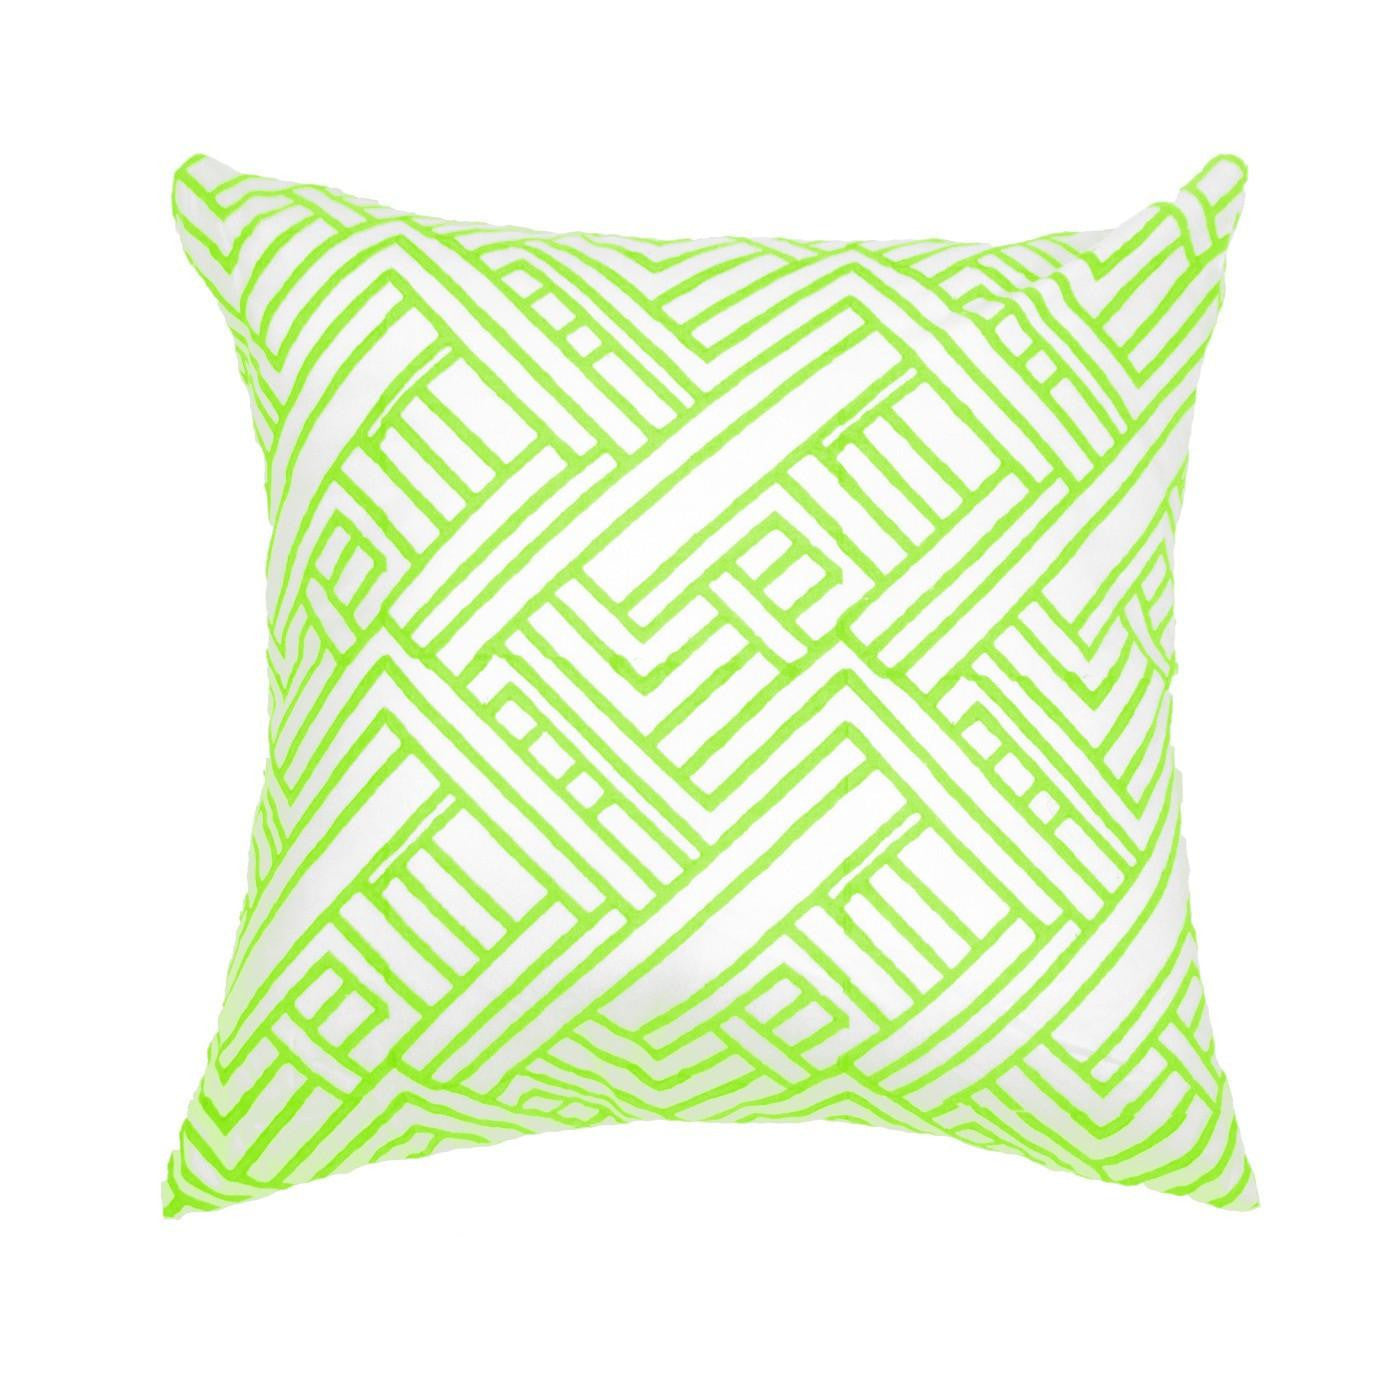 Hash Print Neon Lime Medium Cushion 50x50cm